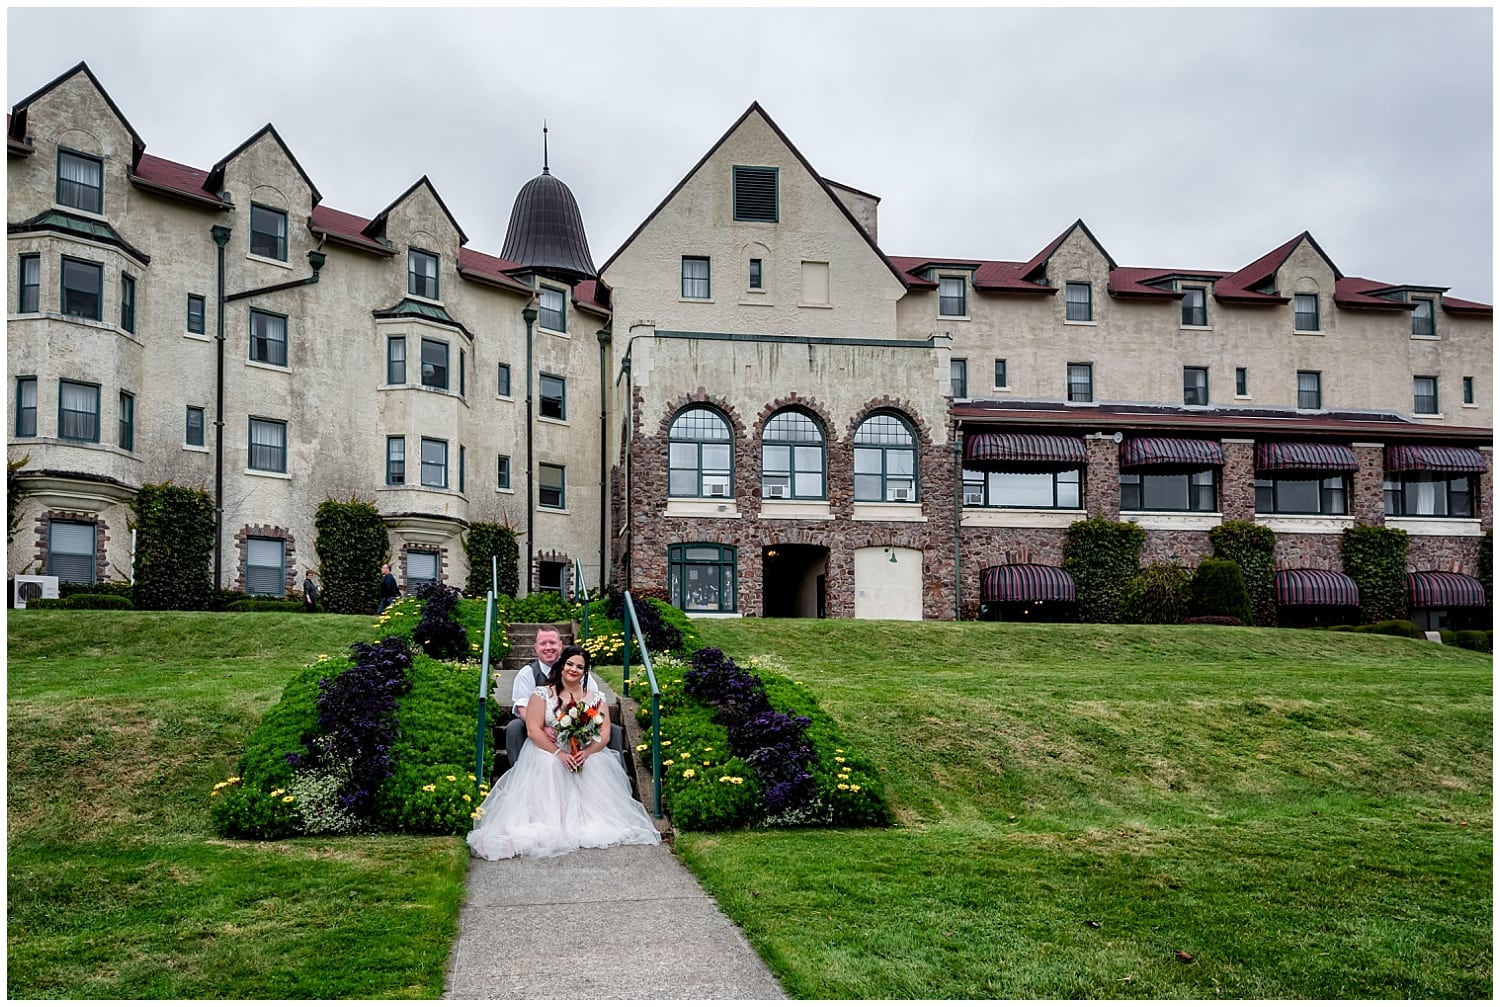 The bride and groom pose for wedding photos at the back of the Digby Pines Resort hotel in Digby Nova Scotia.